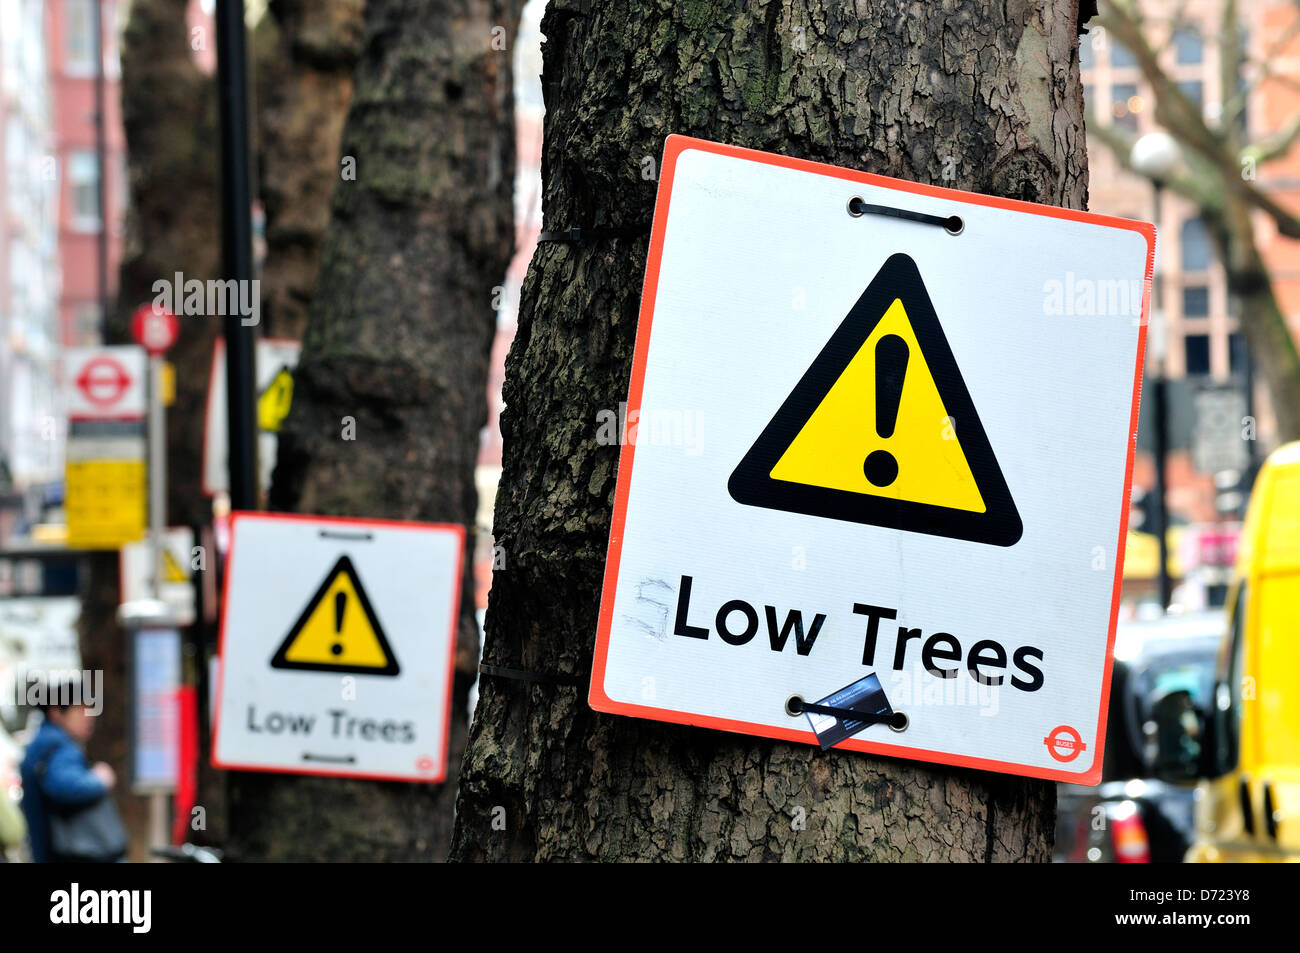 London, England, UK. 'Low Trees' sign - defaced to say 'slow' - Stock Image